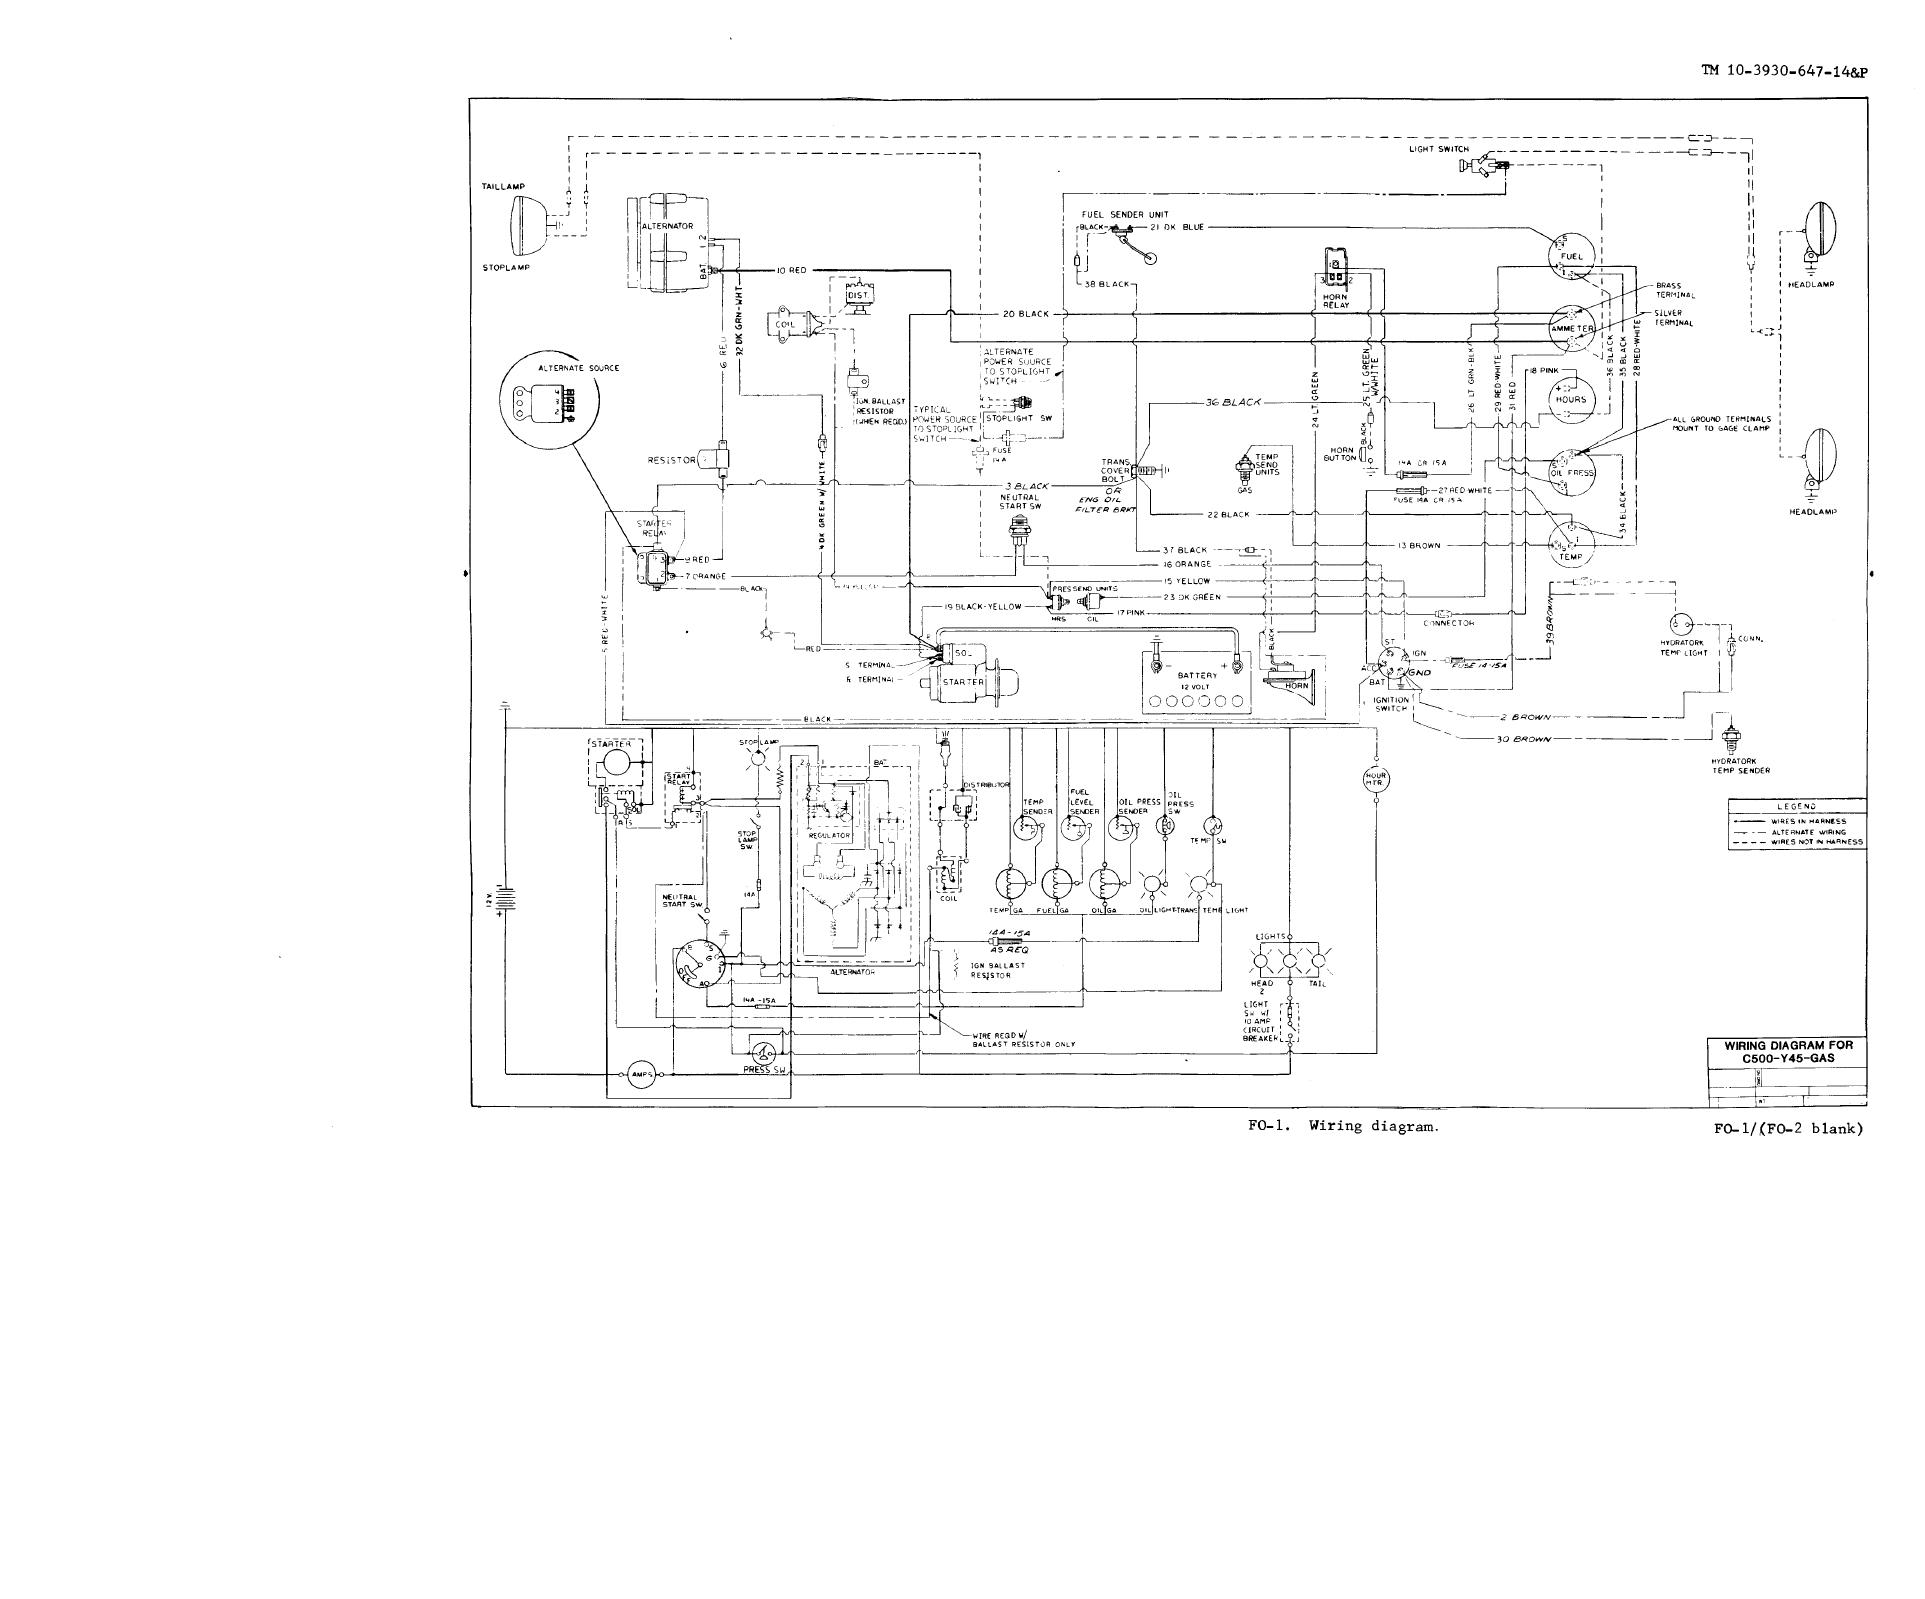 96 Altima Wiring Diagram, 96, Free Engine Image For User